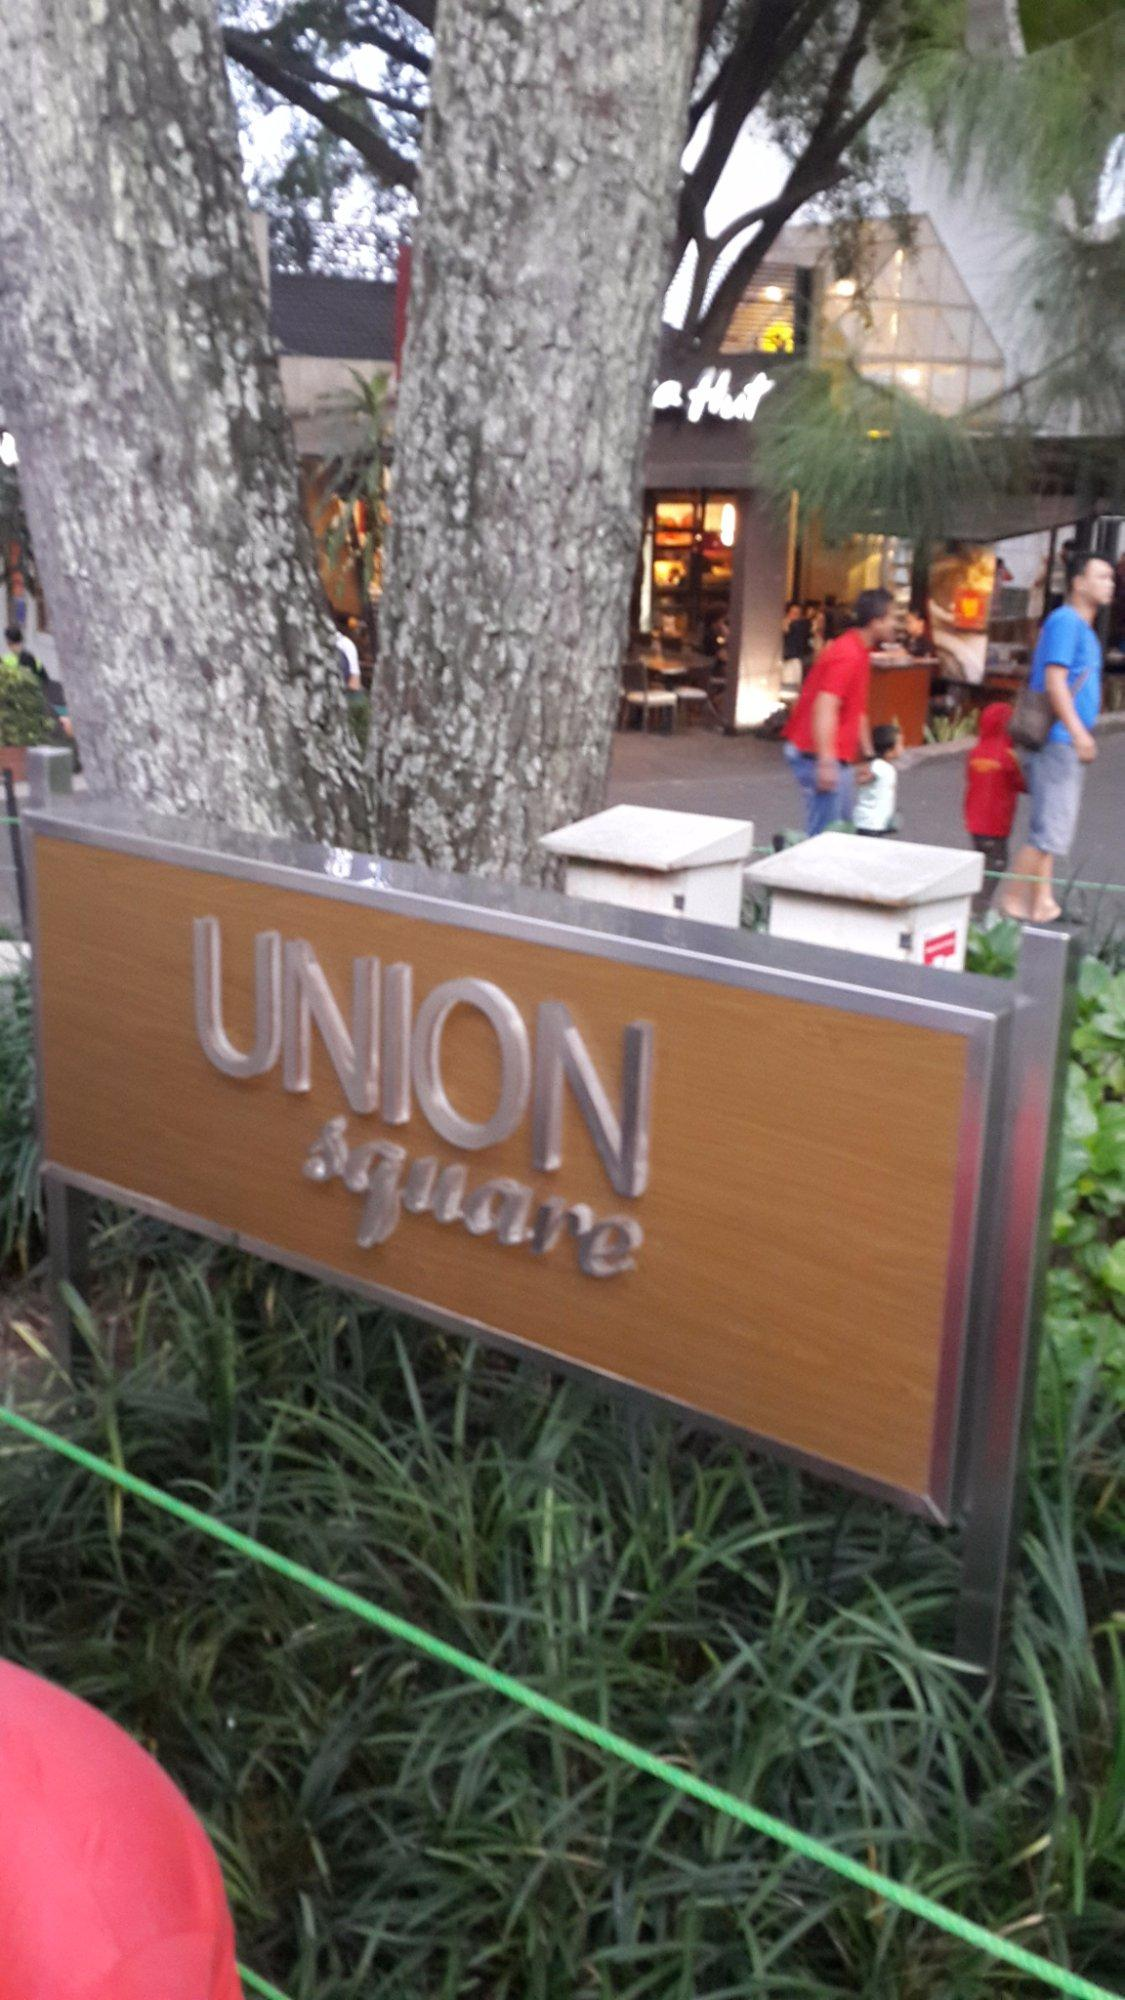 Union Jack bar and Resto